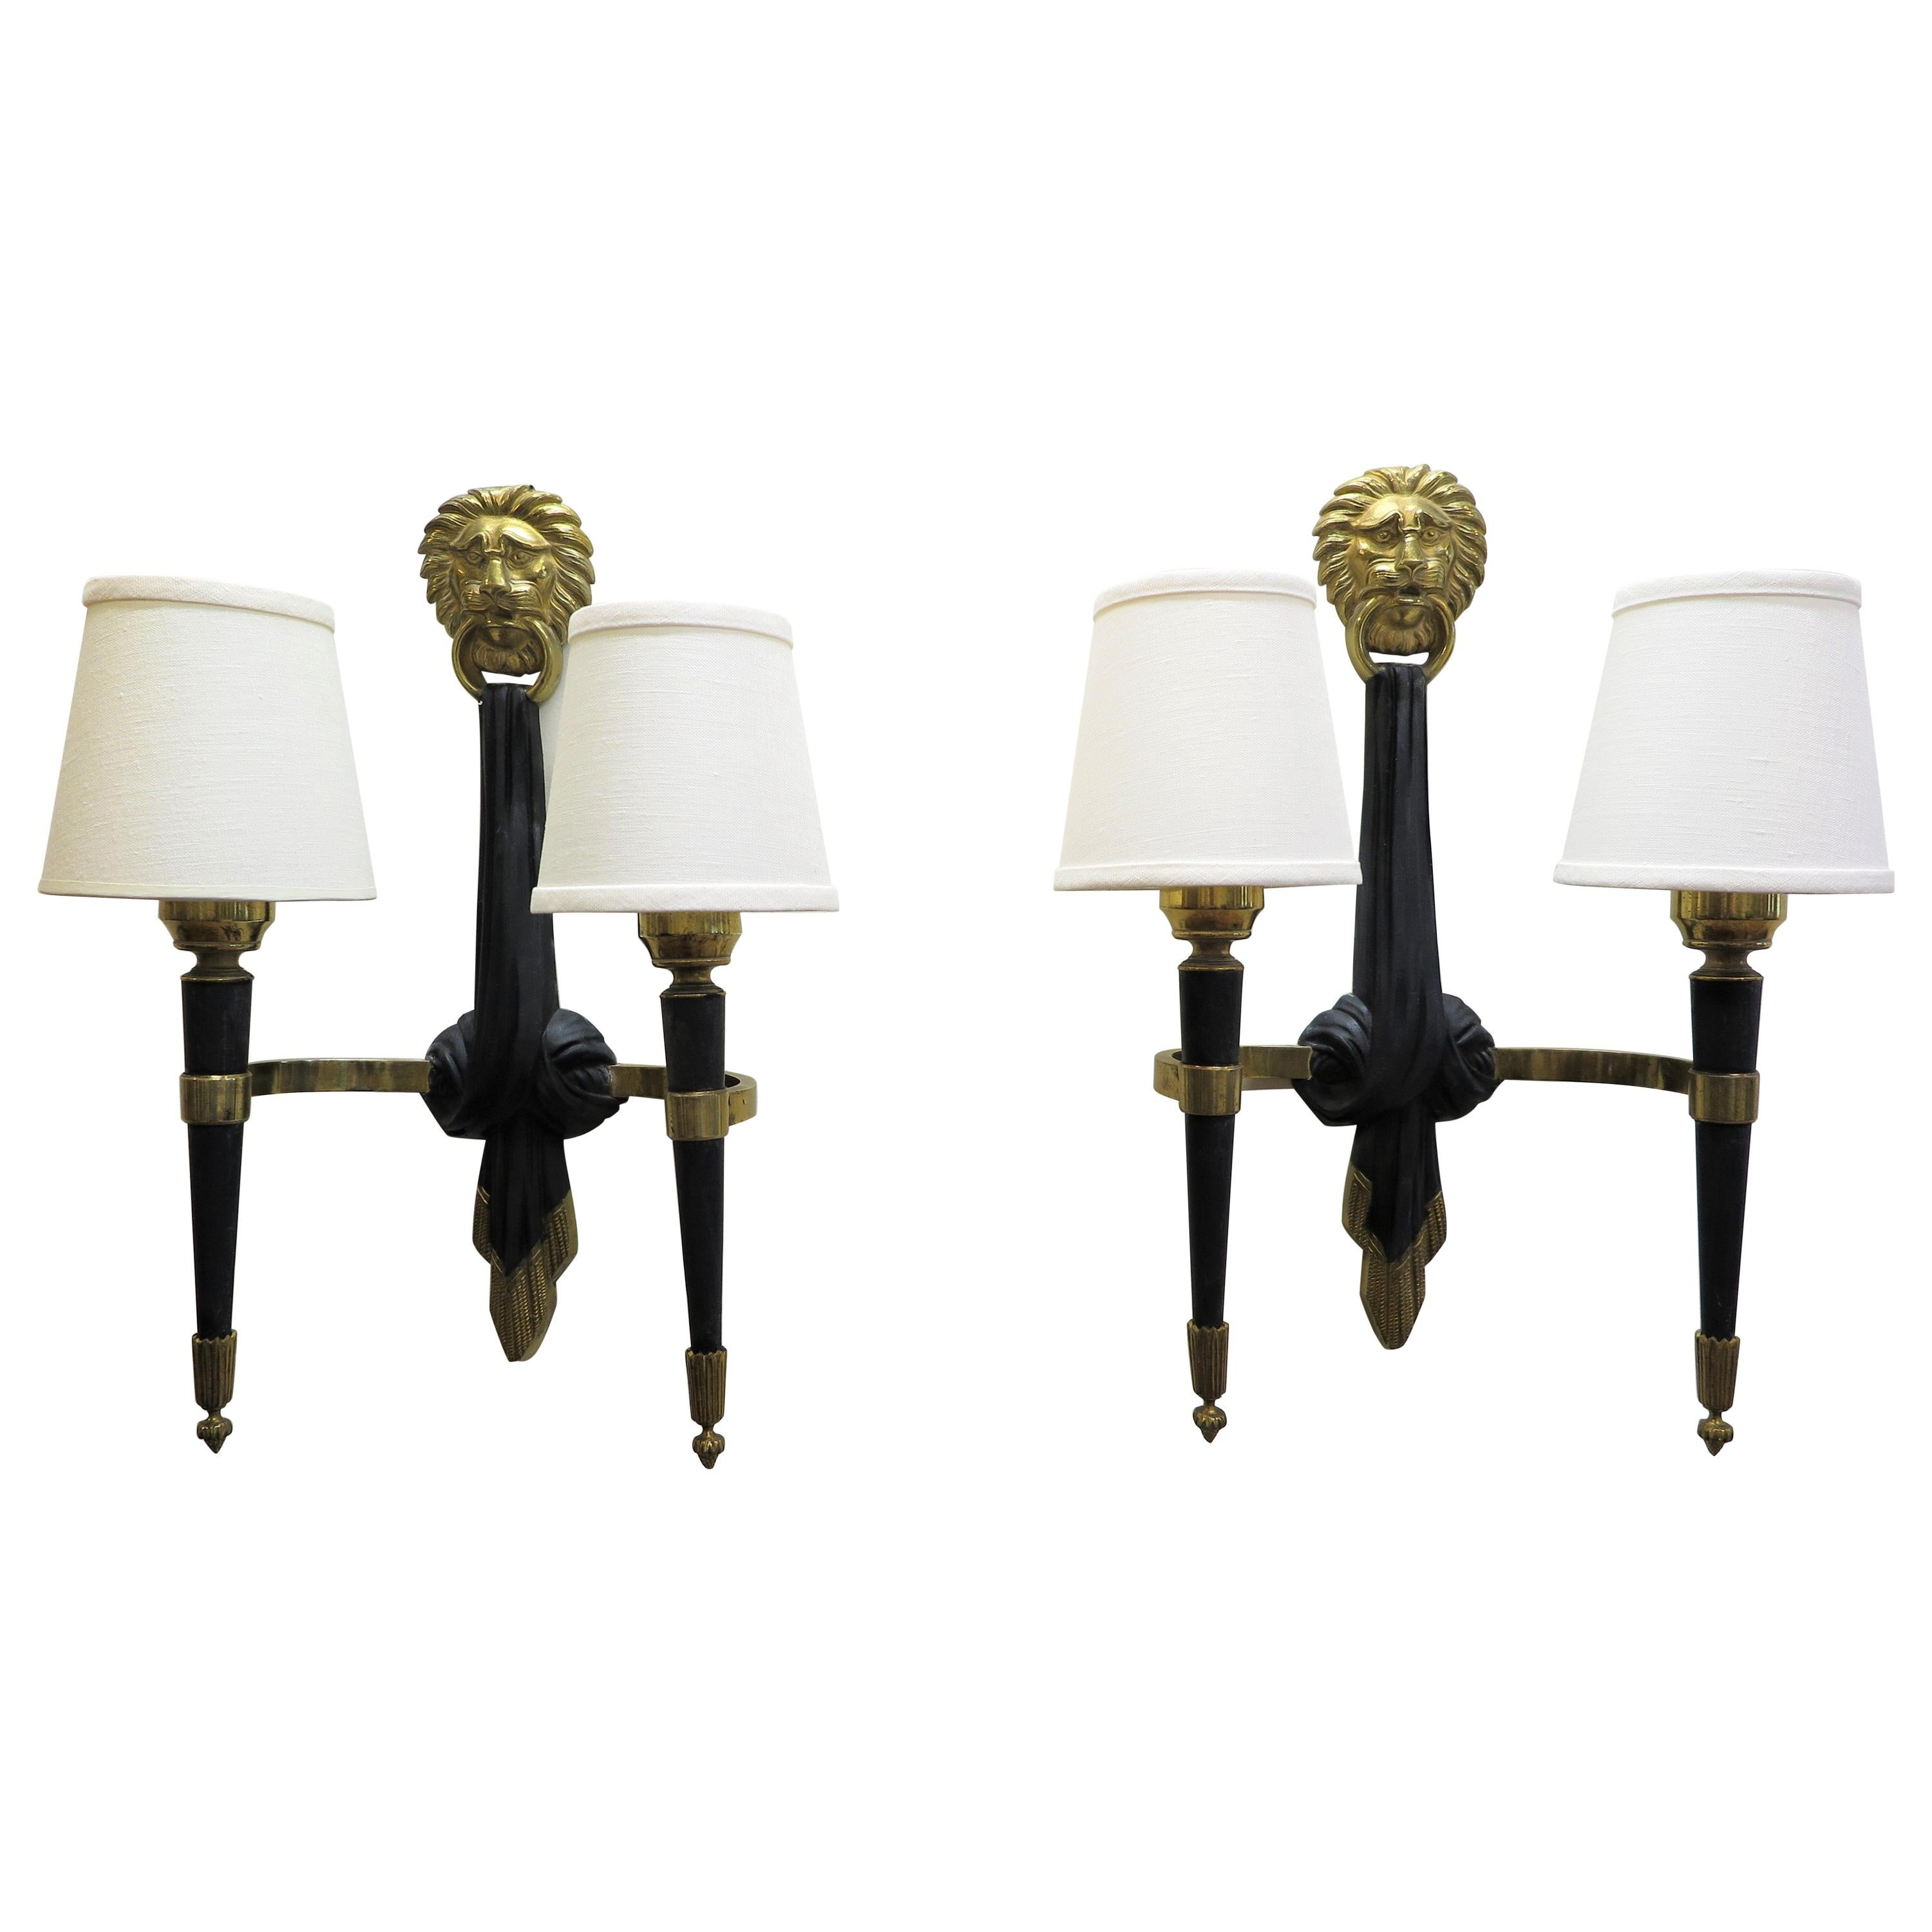 Pair of French Midcentury Sconces Maison Jansen